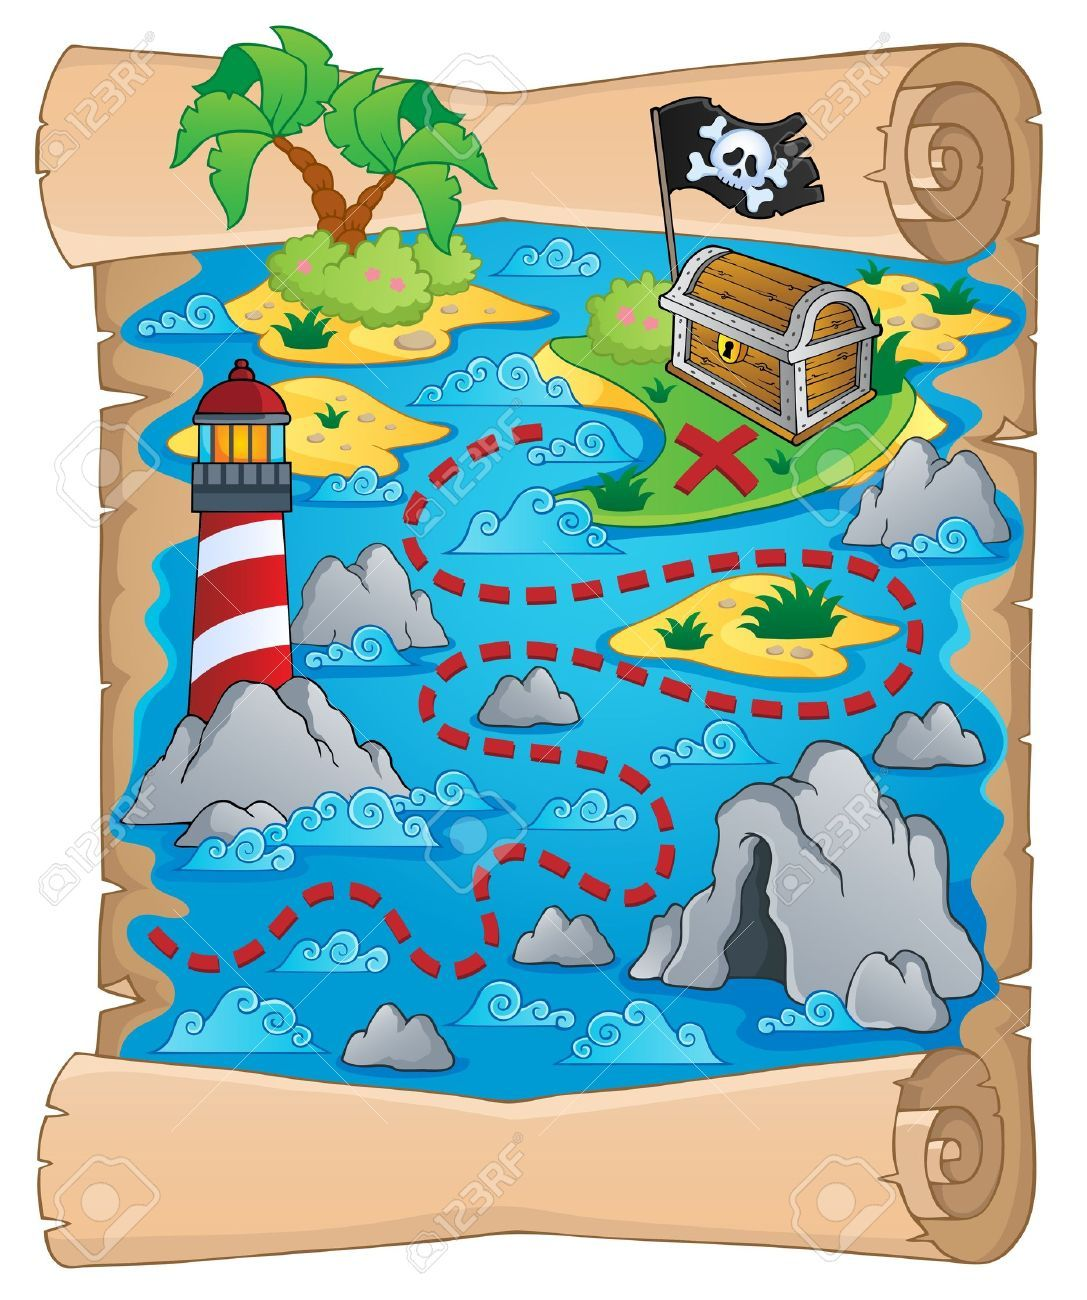 picture regarding Free Printable Pirate Treasure Map named Picture consequence for free of charge printable pirate treasure map